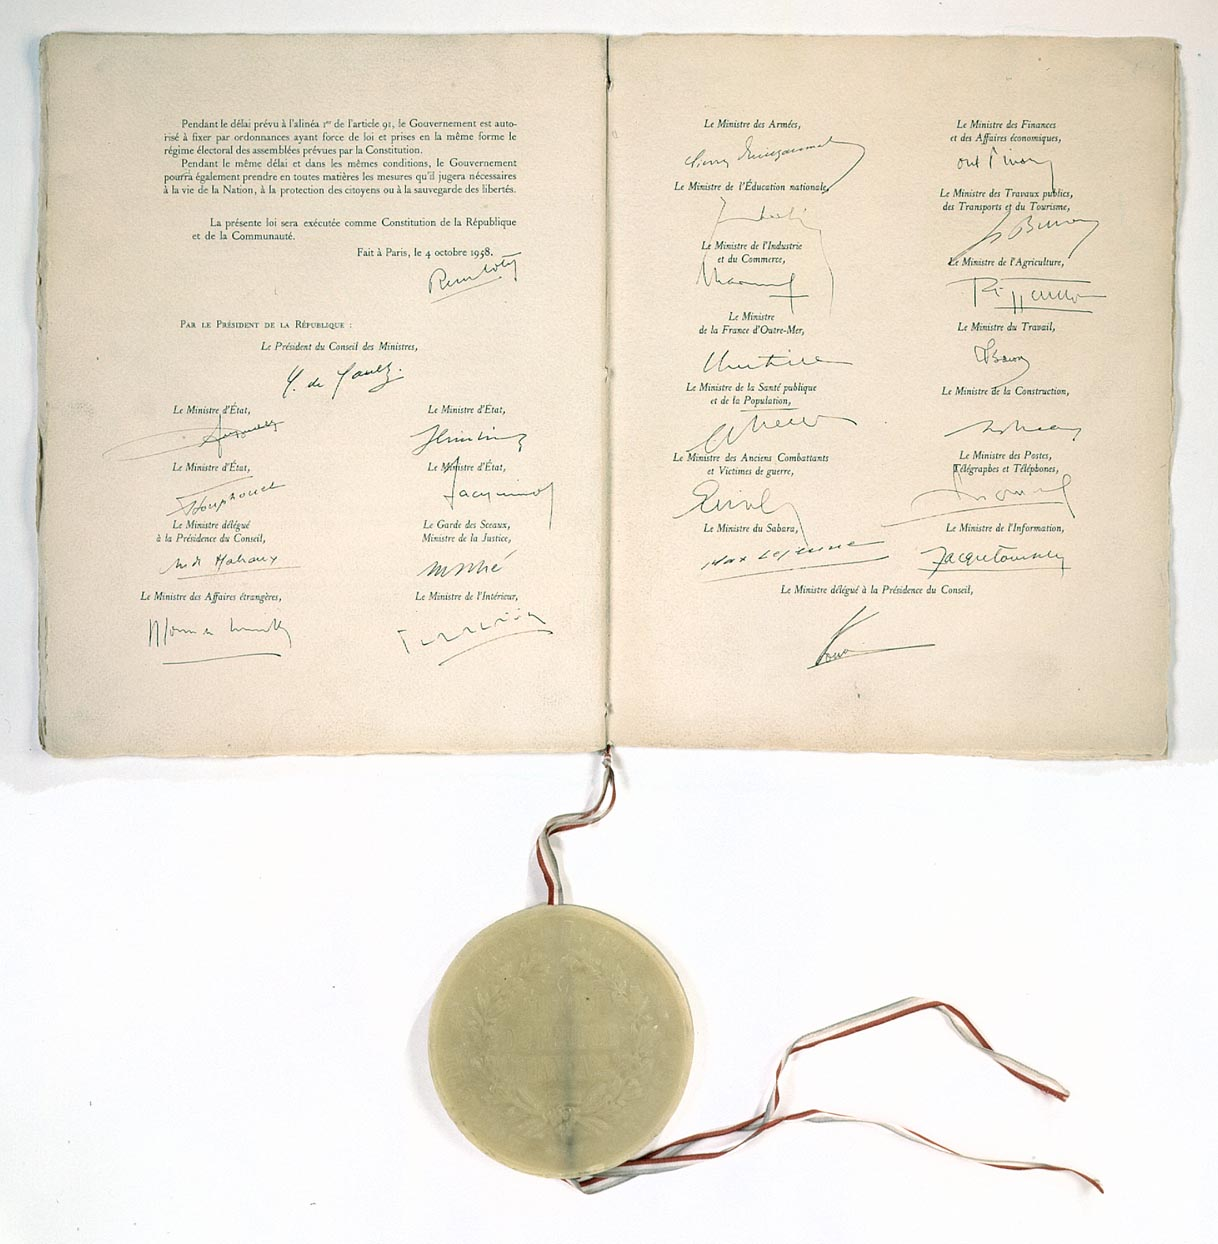 Constitution_de_la_Ve_République_(4_octobre_1958)_Page_de_signatures_-_Archives_Nationales_-_AE-I-29_bis_n°_19